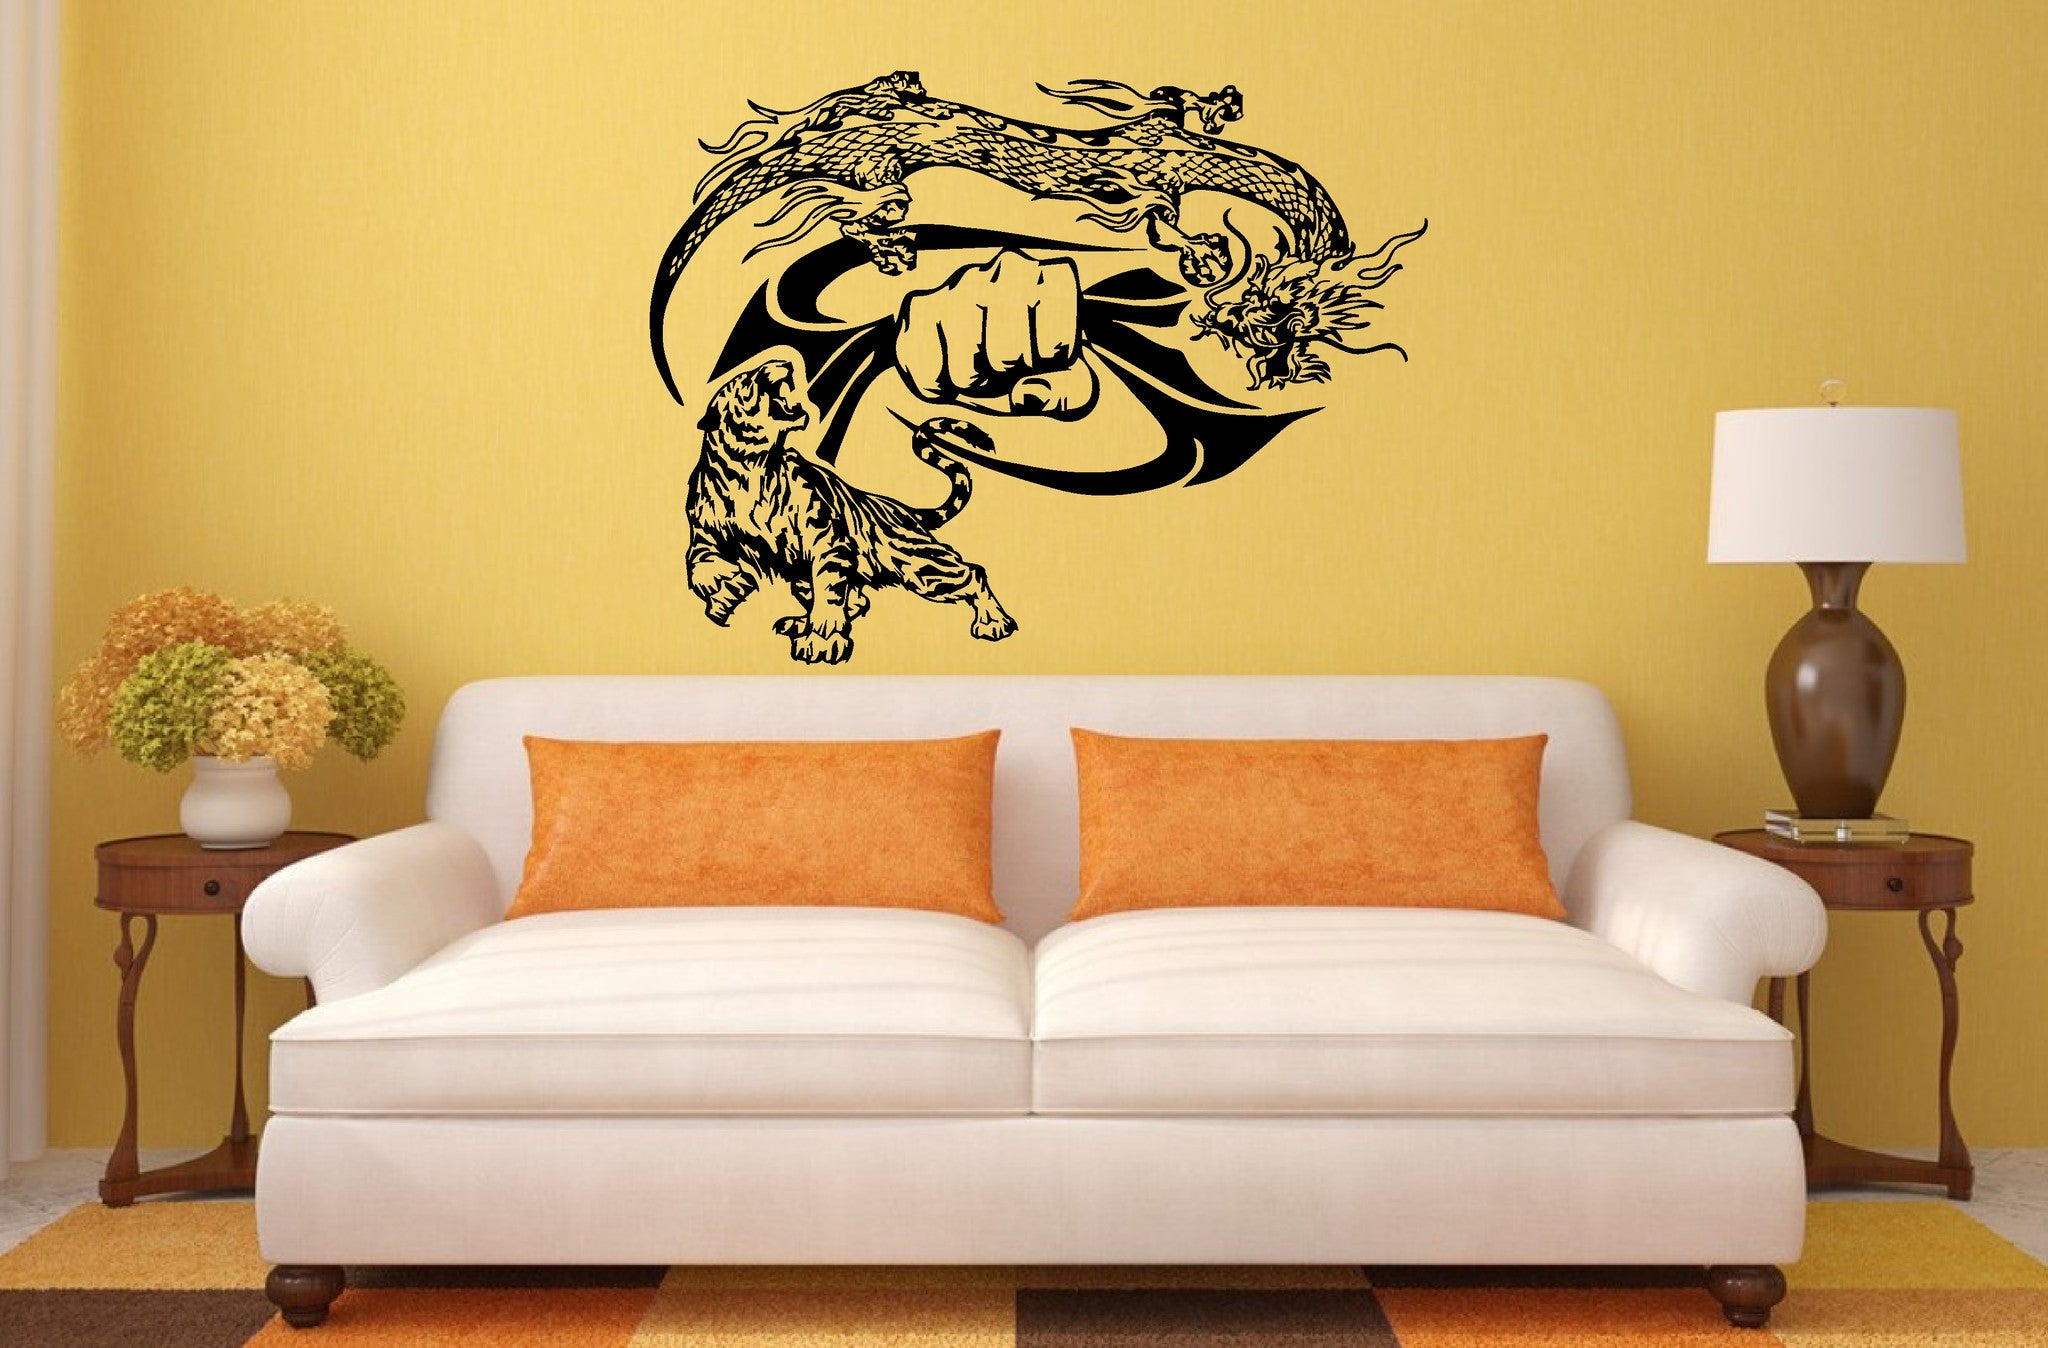 Luxury Wall Art Shop Illustration - The Wall Art Decorations ...